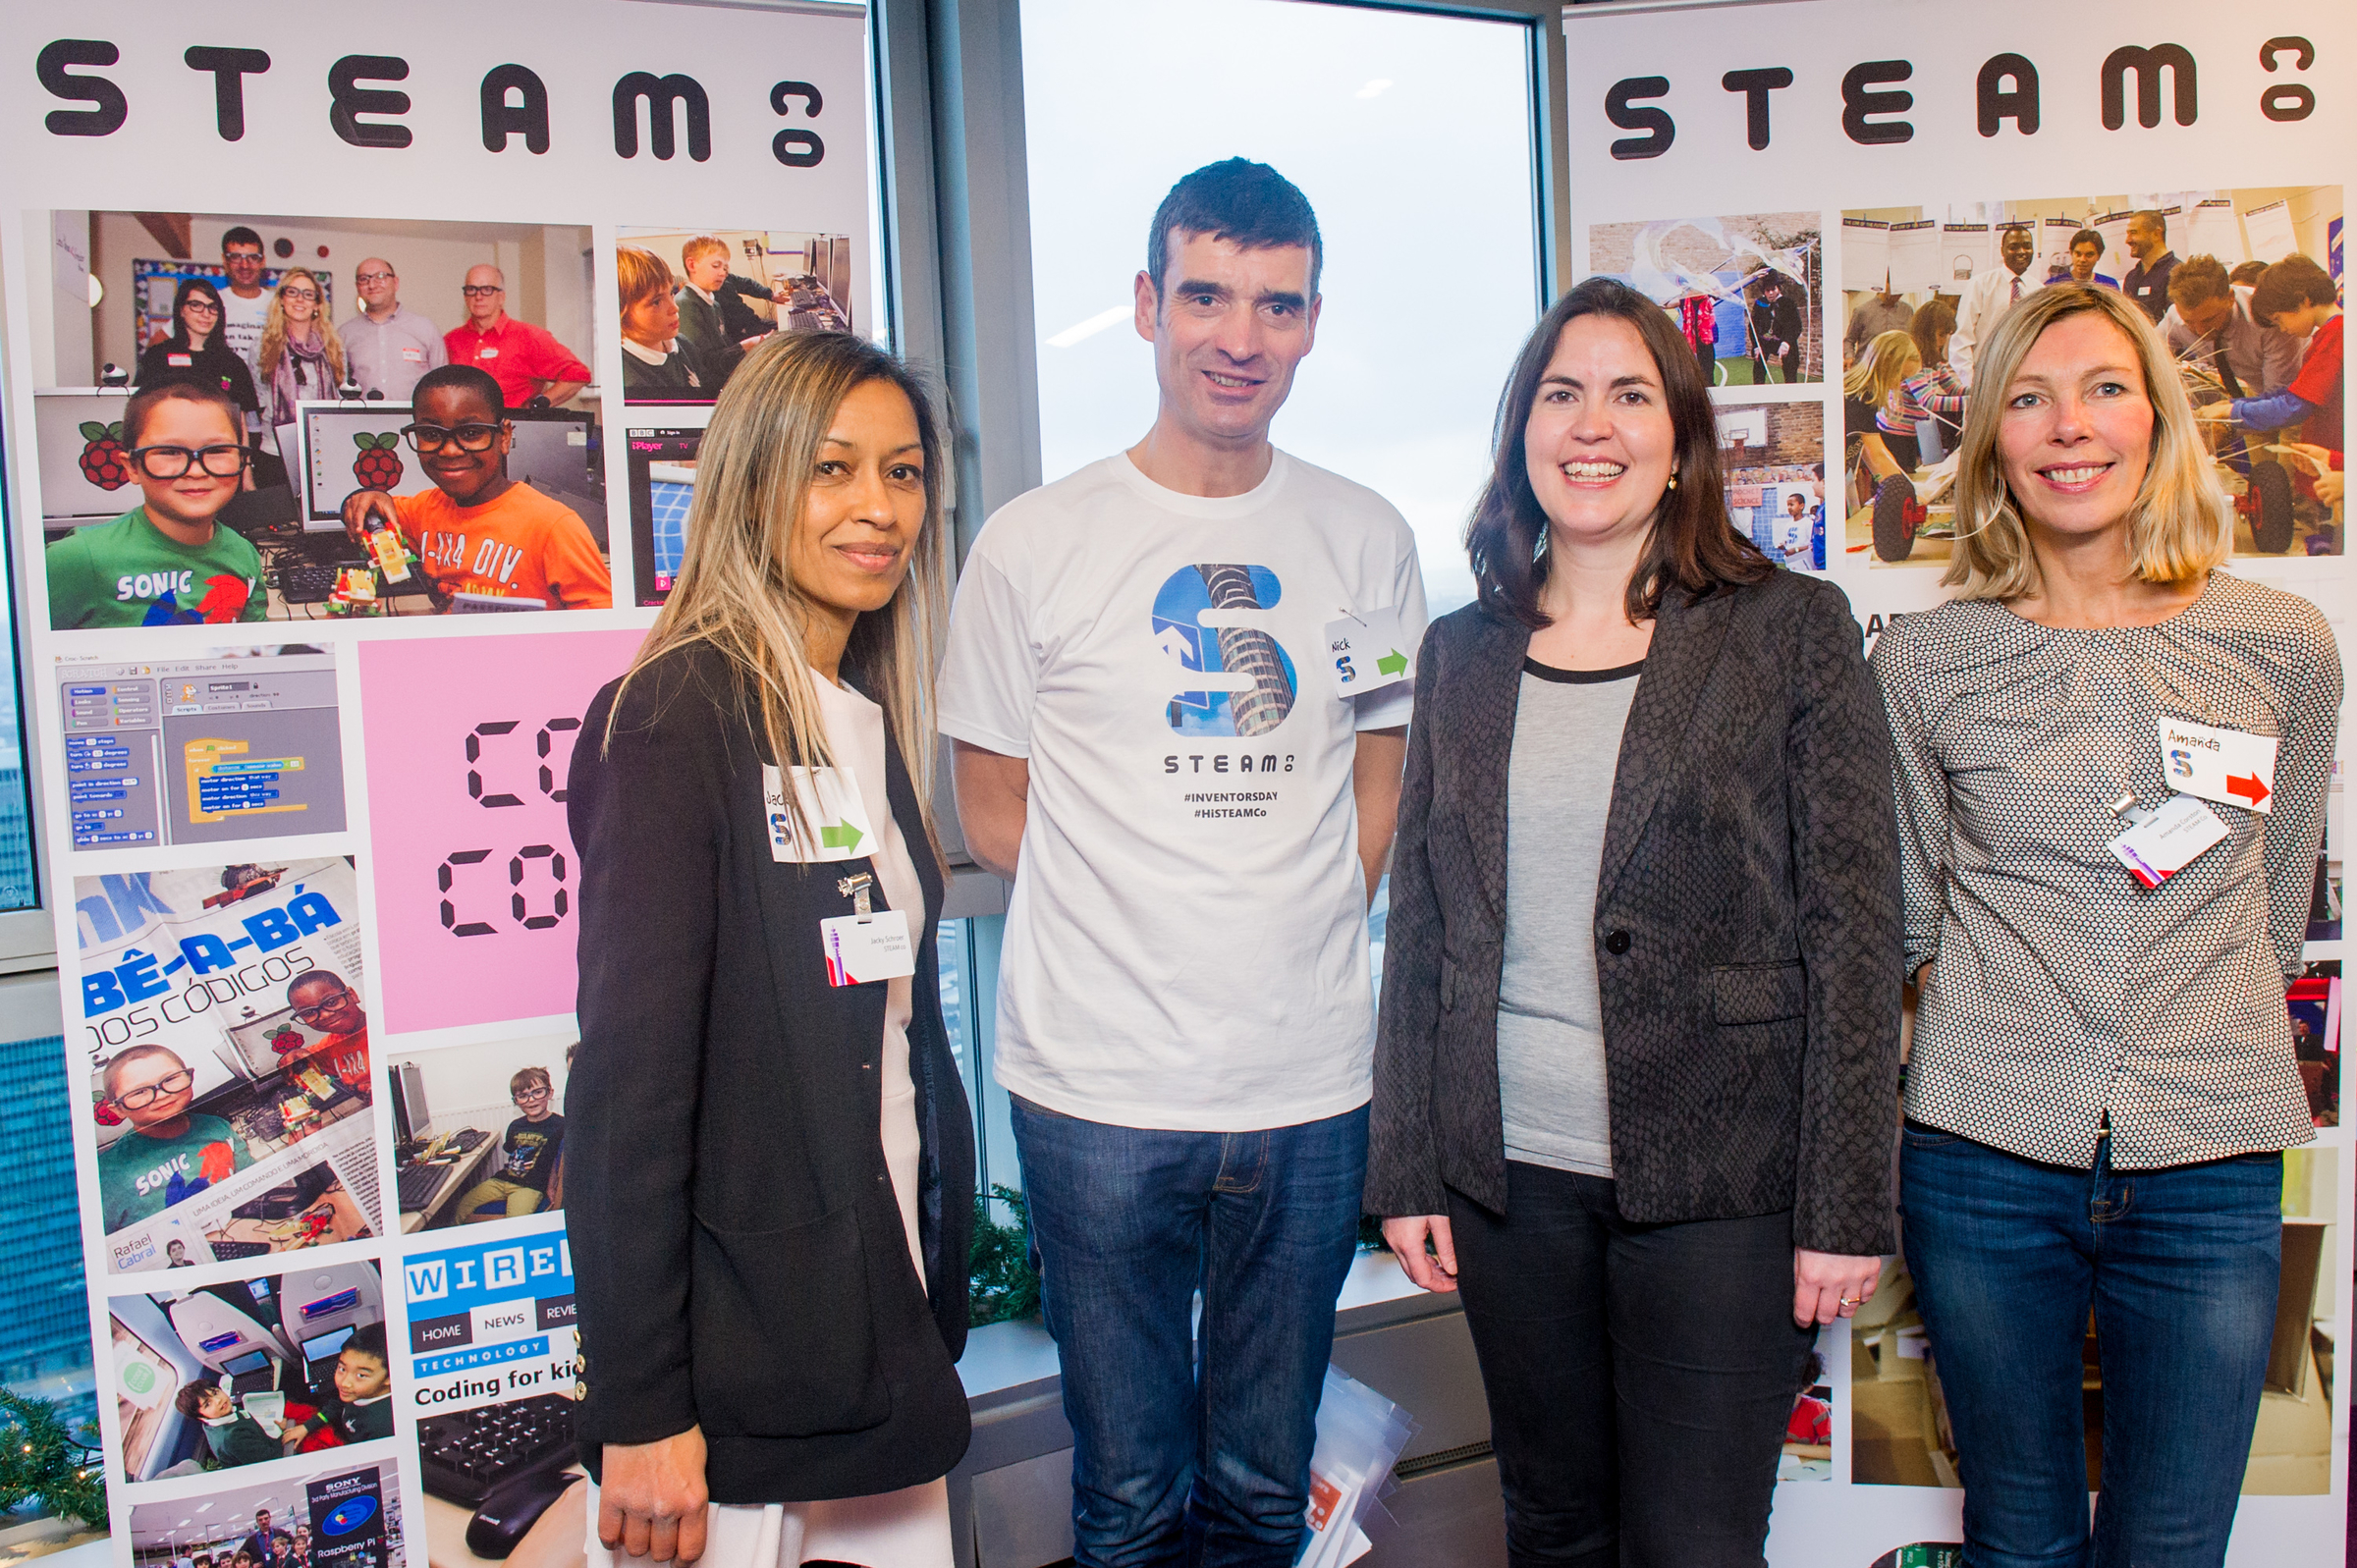 Suzy Christopher of BT with the STEAM Co. founders Jacky Schroer and Nick and Amanda Corston